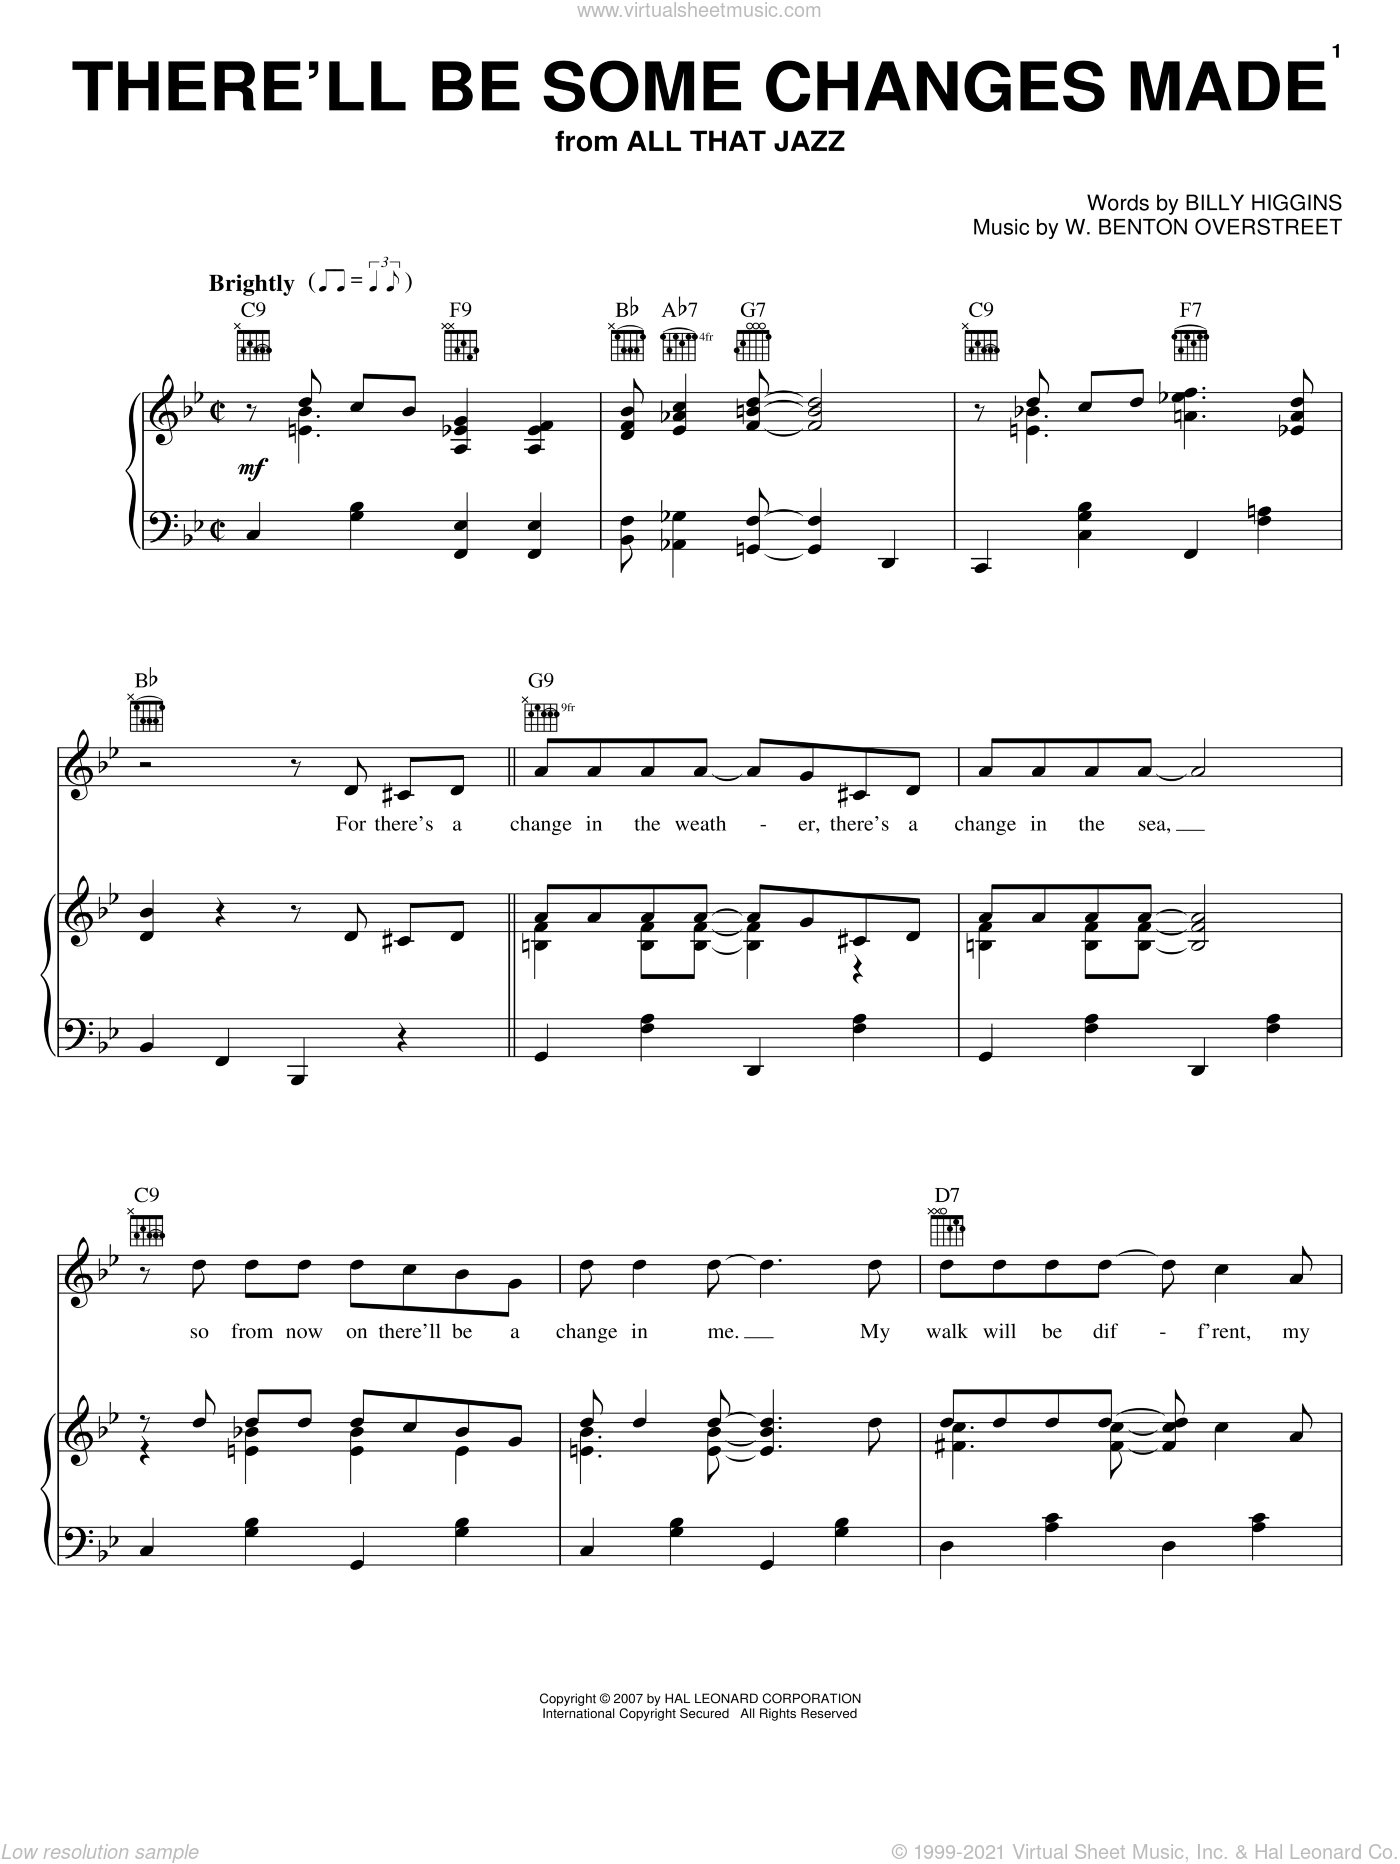 There'll Be Some Changes Made sheet music for voice, piano or guitar by W. Benton Overstreet. Score Image Preview.